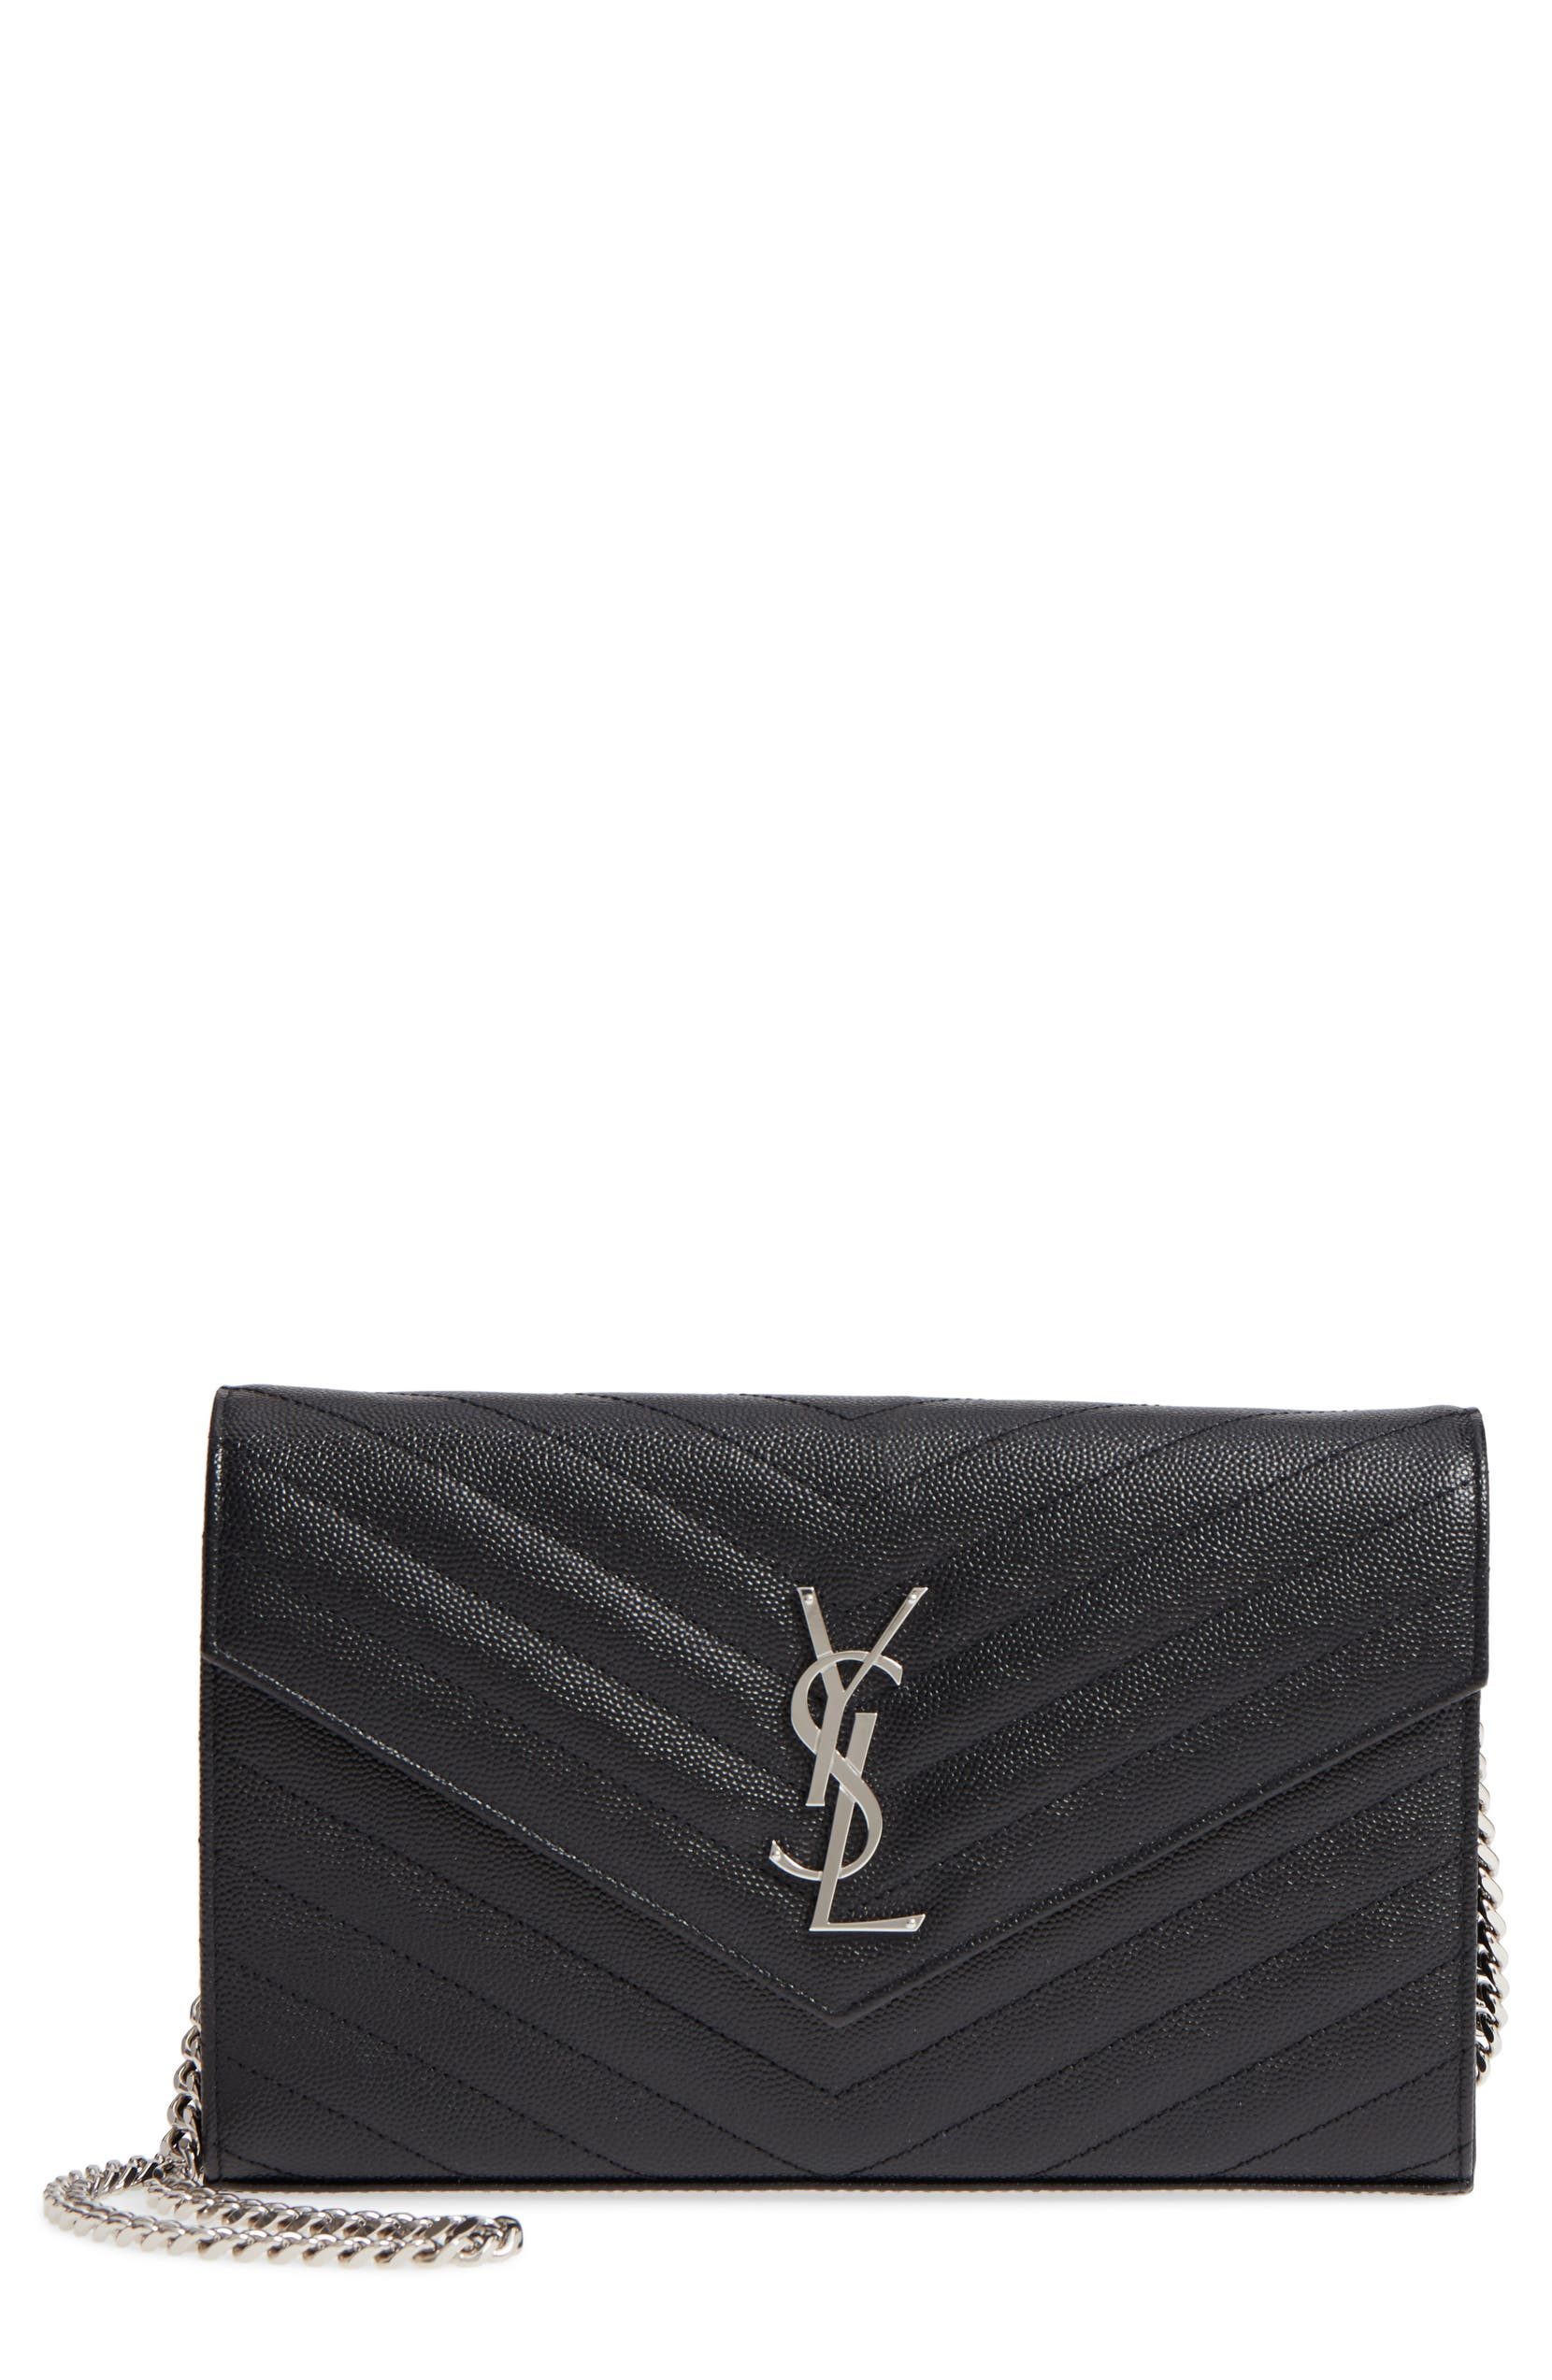 6019c5c7841507 Saint Laurent 'Monogram' Wallet on a Chain | Nordstrom